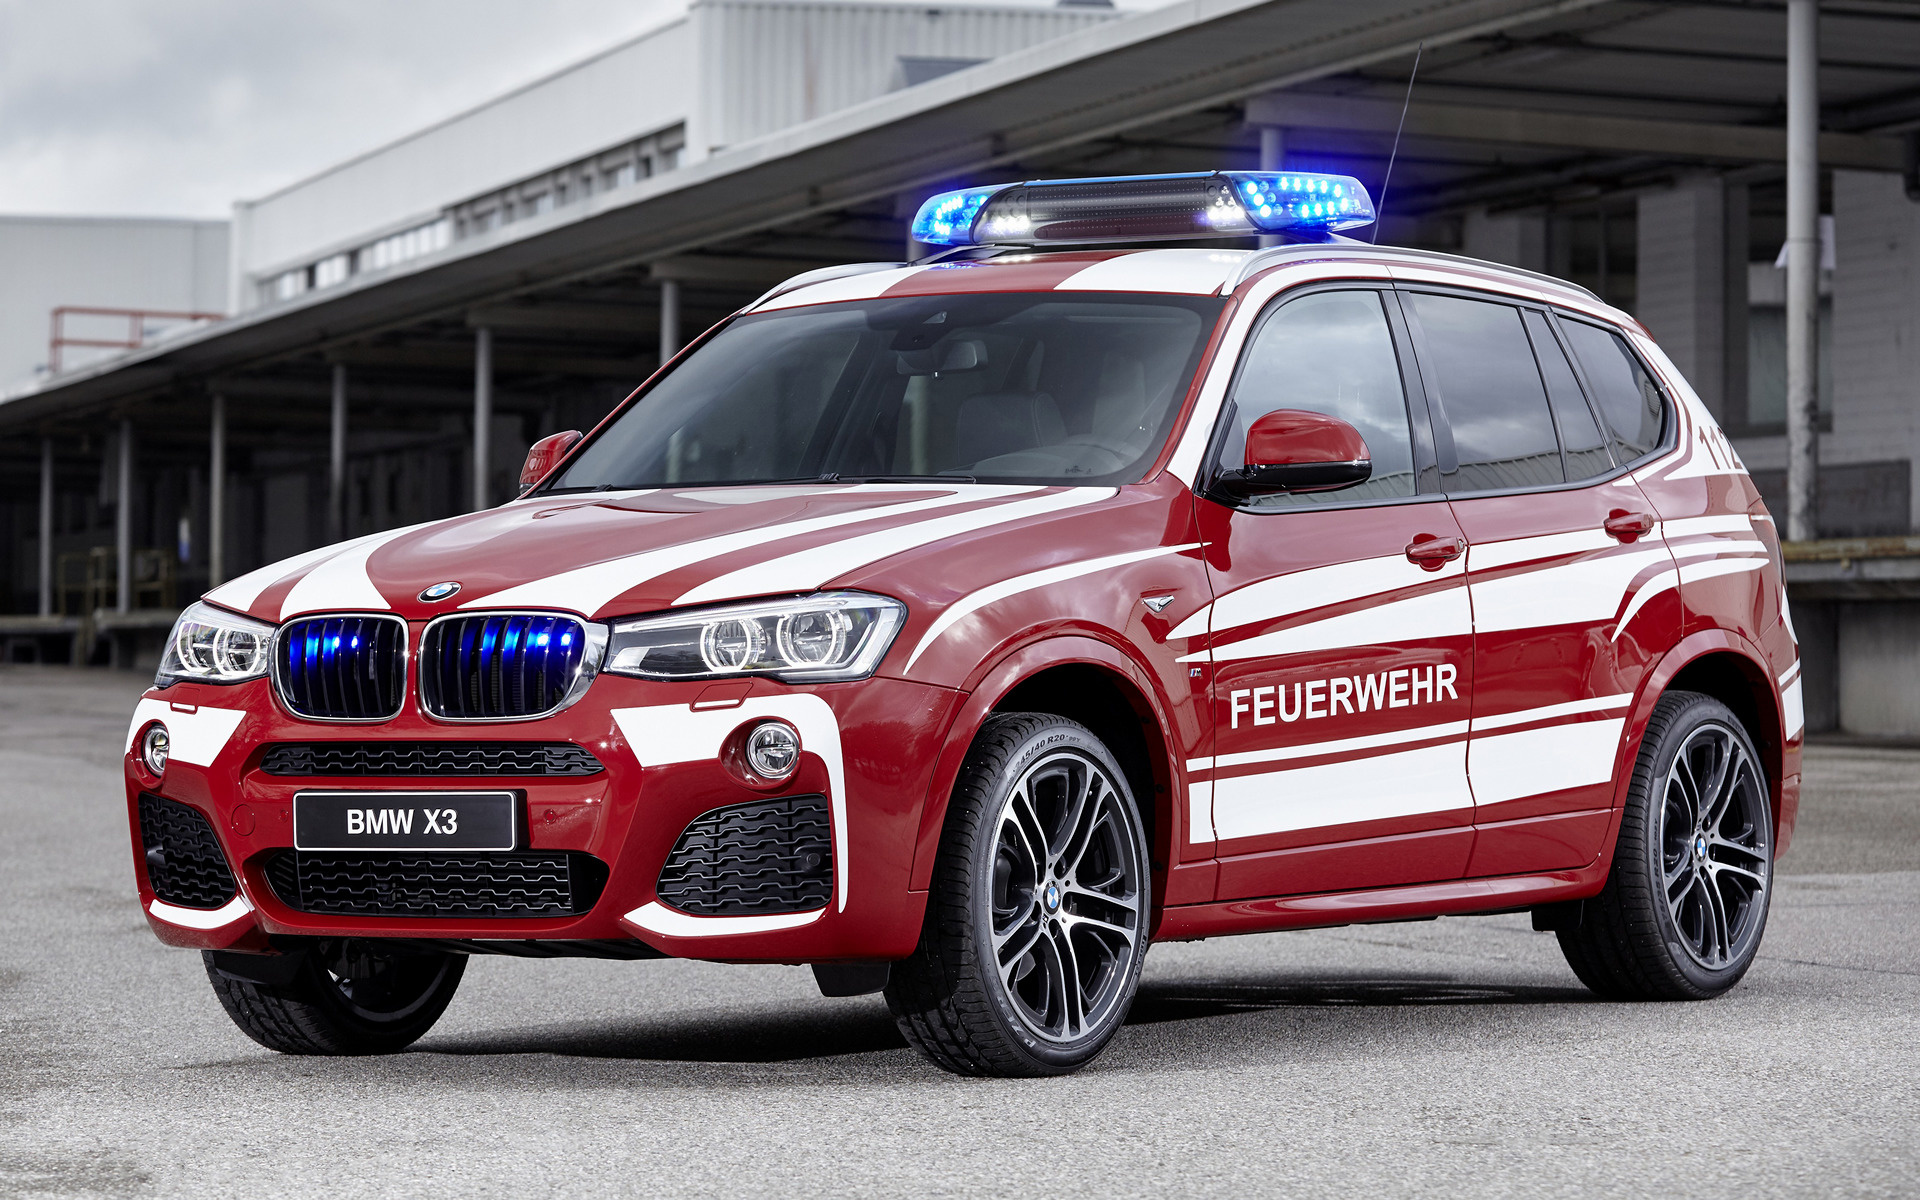 2016 Bmw X3 M Sport Feuerwehr Wallpapers And Hd Images